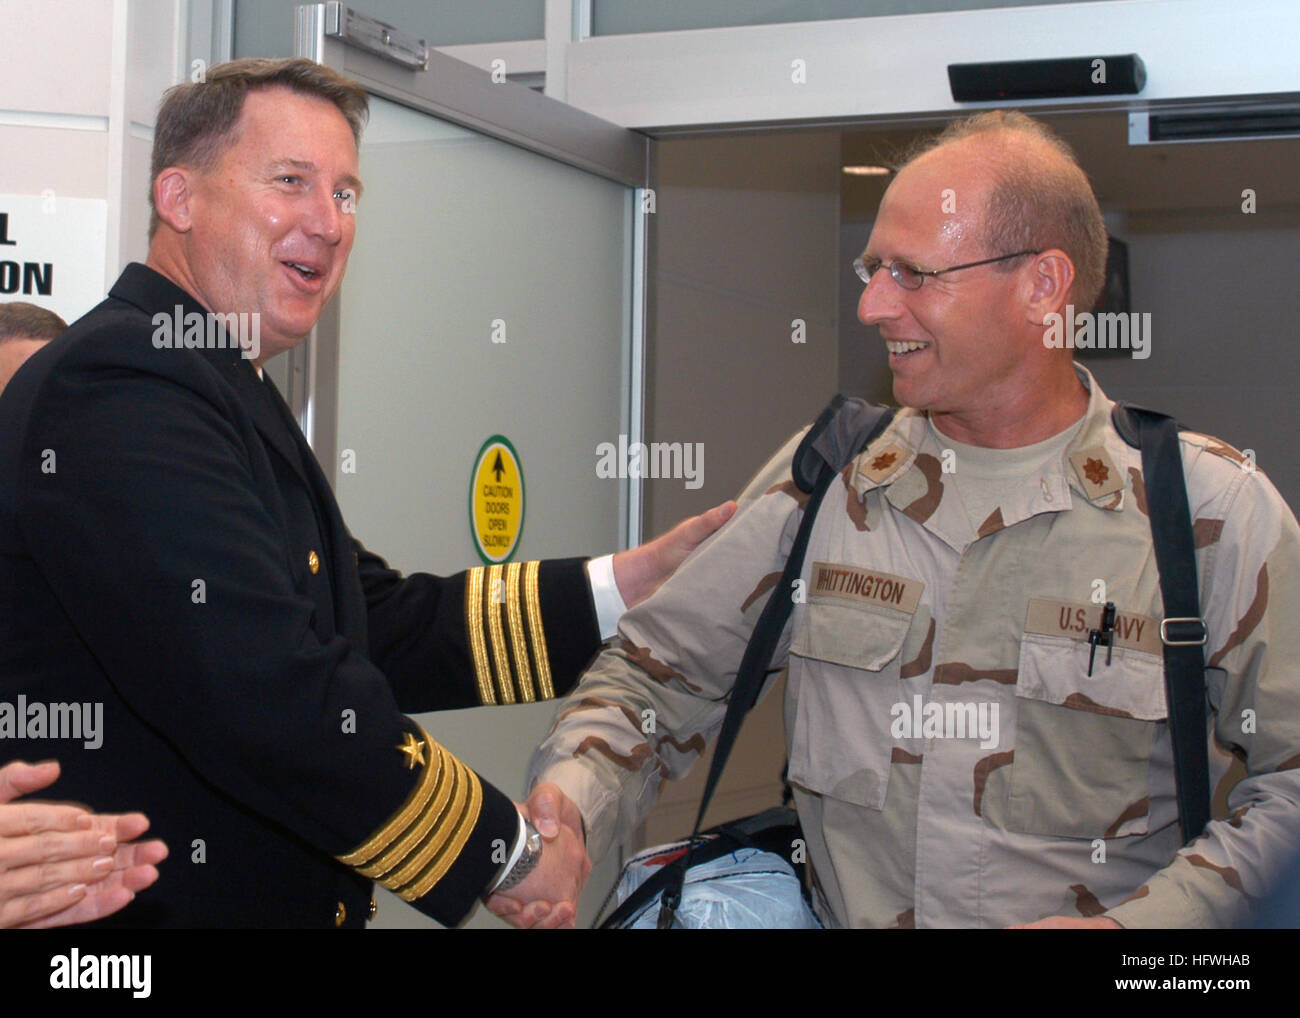 081113-N-2555T-011 BALTIMORE, Md. (Nov. 13, 2008) Captain Jeffrey L. McKenzie, commanding officer of Expeditionary - Stock Image